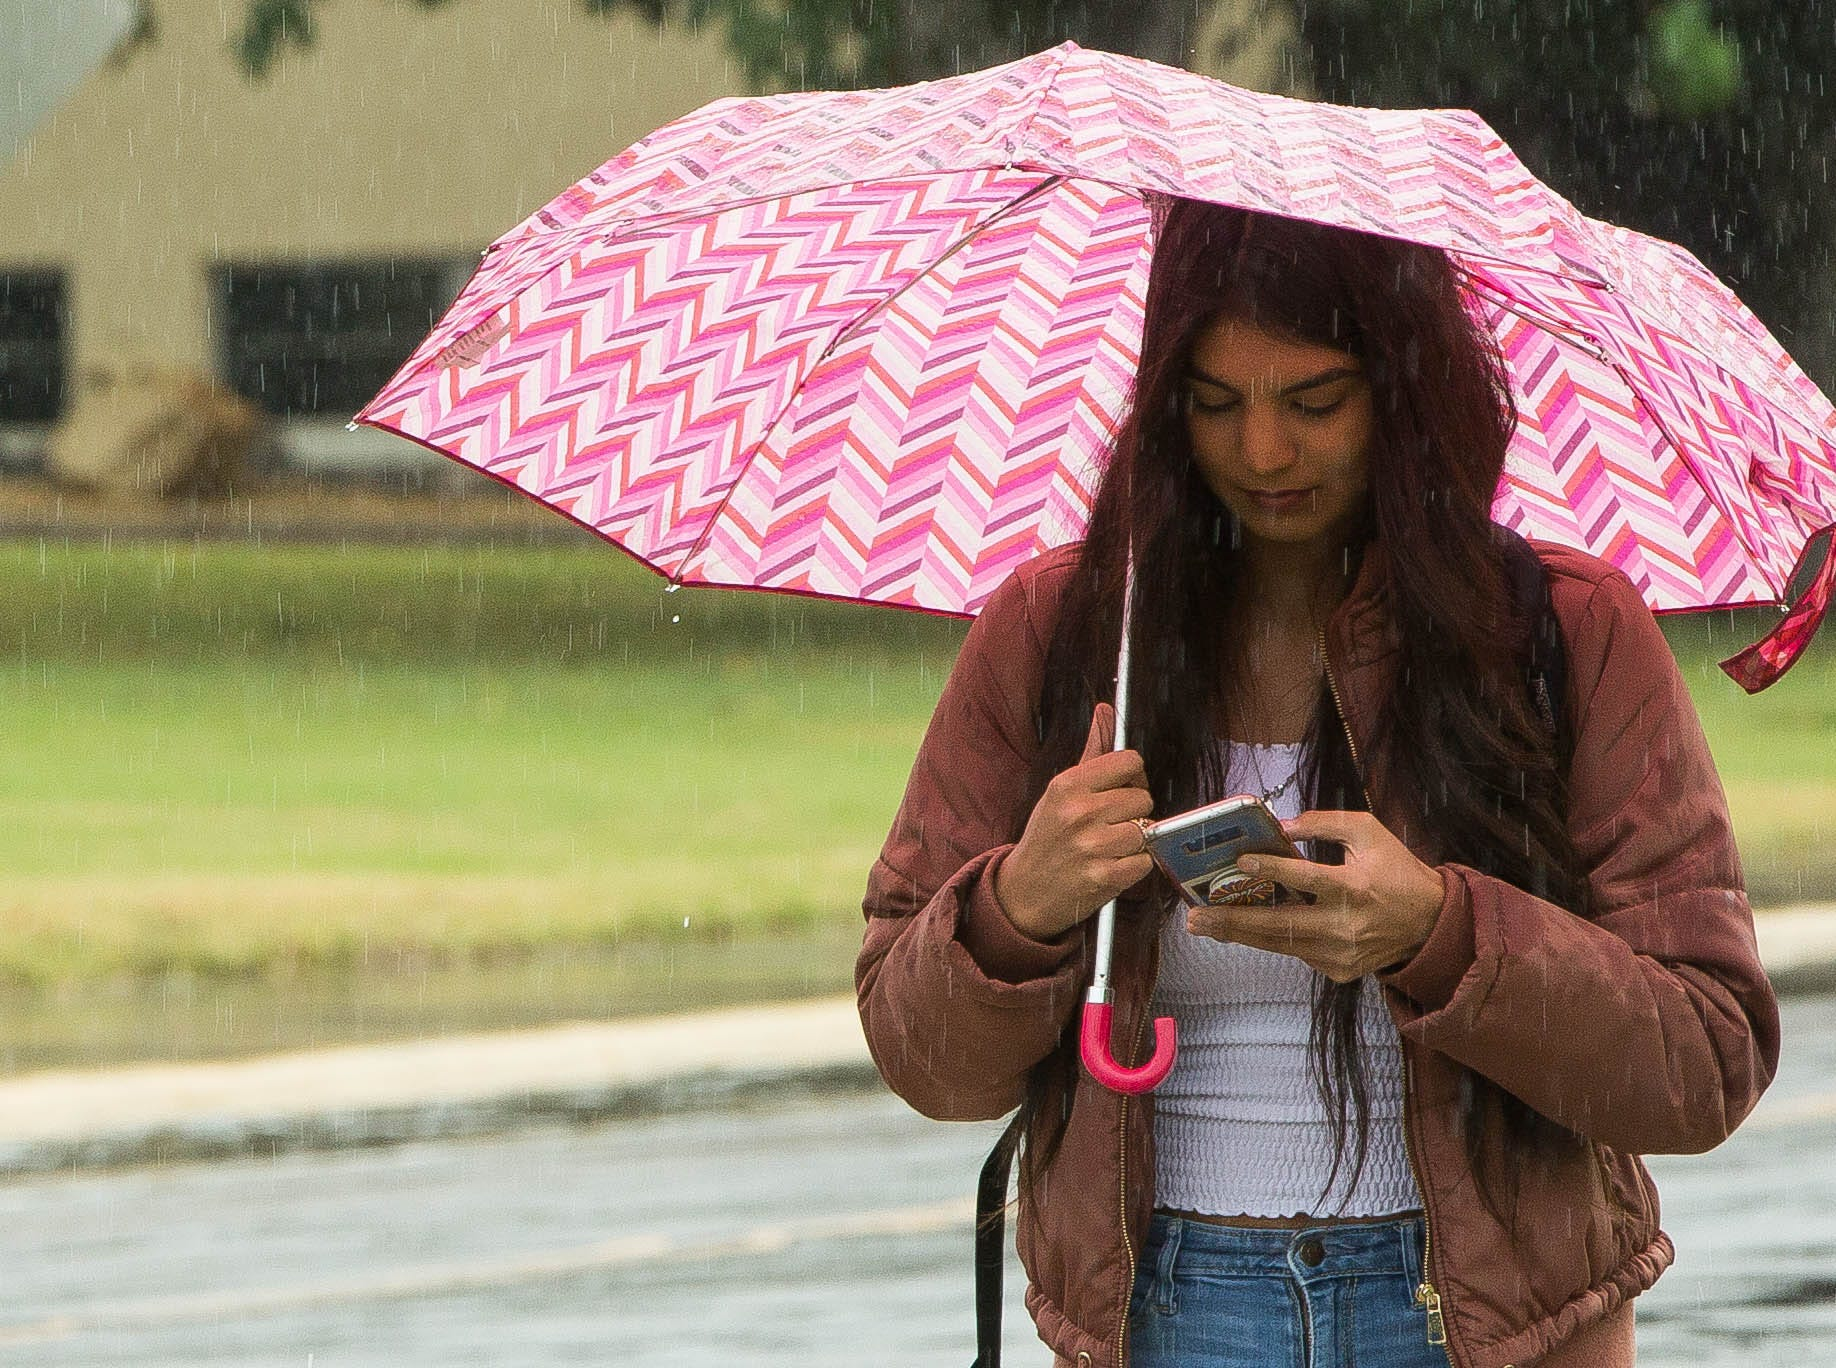 Destiny Lara, a student at New Mexico State University, walks to her car through the rain, Thursday October 18, 2018. The area continued to be blanketed in clouds, with sporadic showers through out the day.